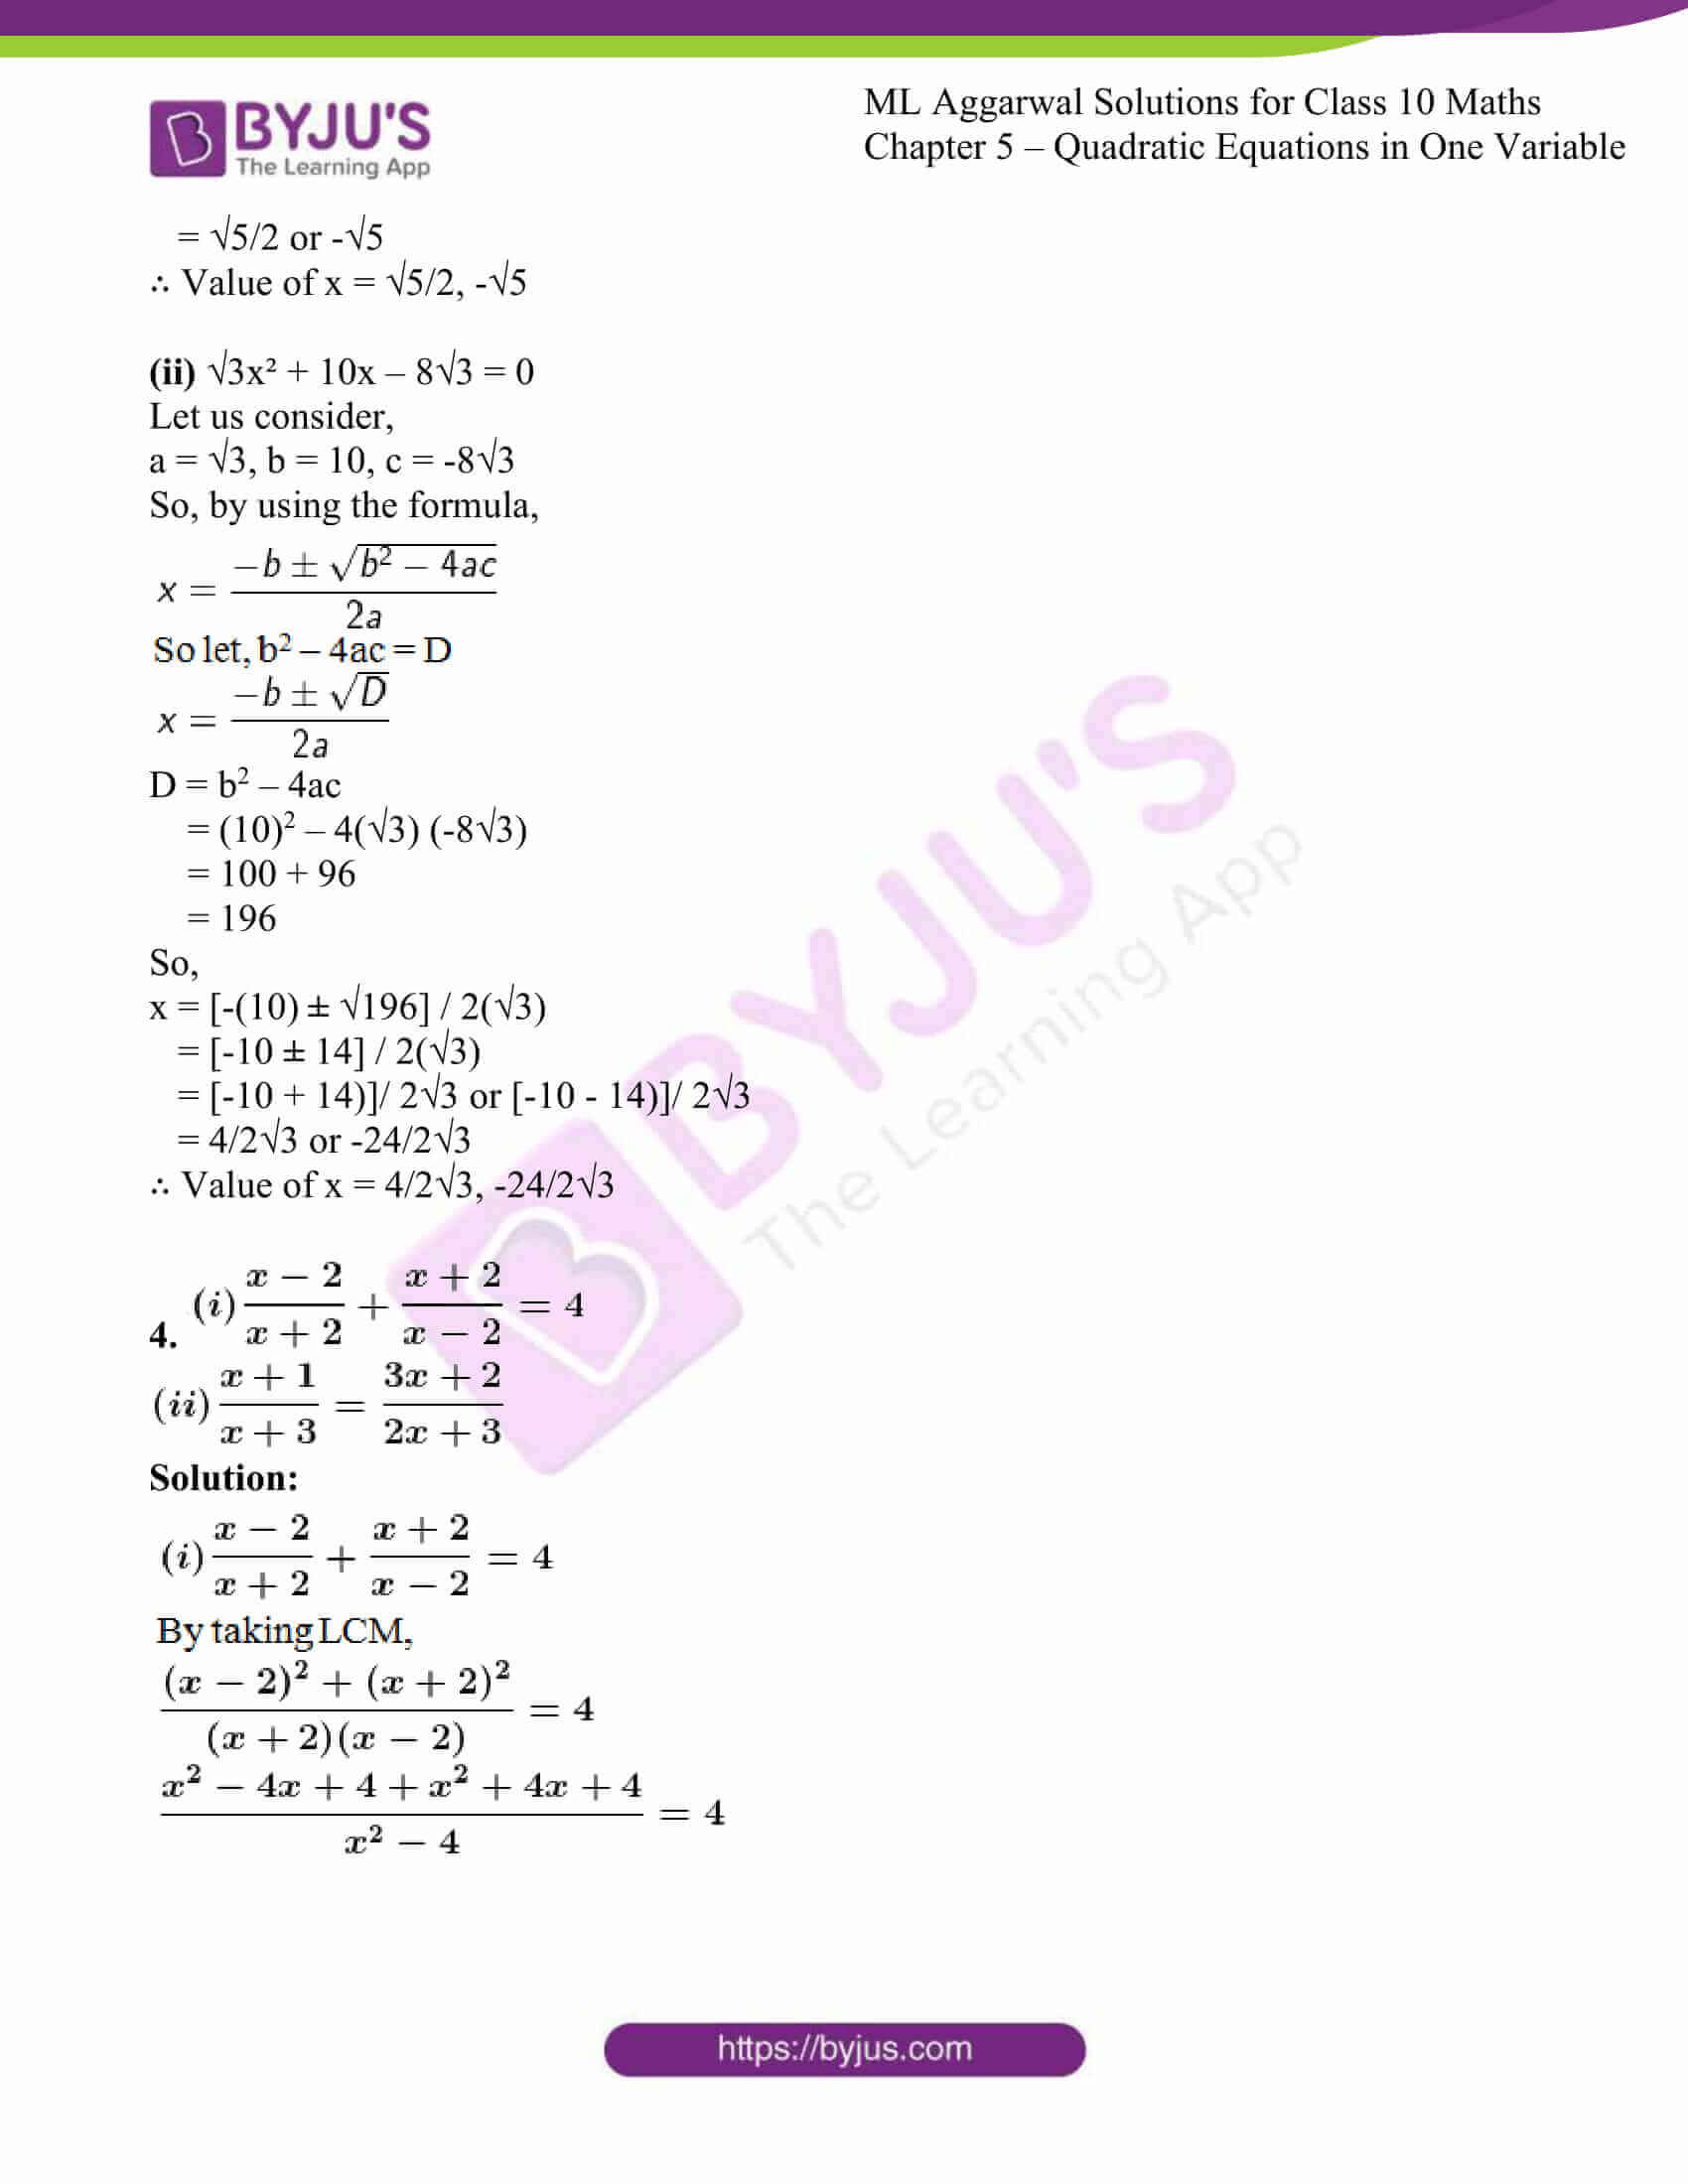 ml aggarwal solutions class 10 maths chapter 5 26